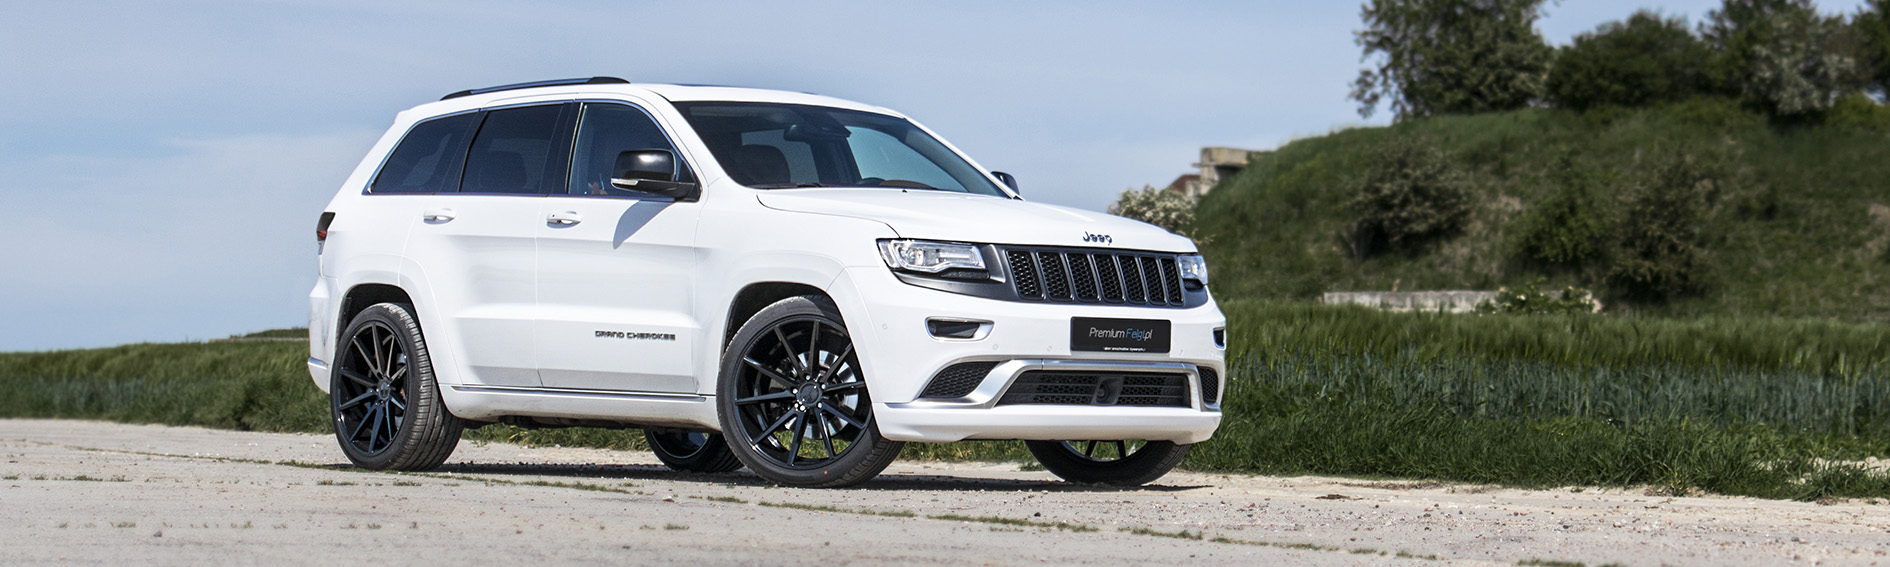 "Customer car gallery - wheels for Jeep Grand Cherokee | Vossen VFS-1 | 22"" - PremiumFelgi"